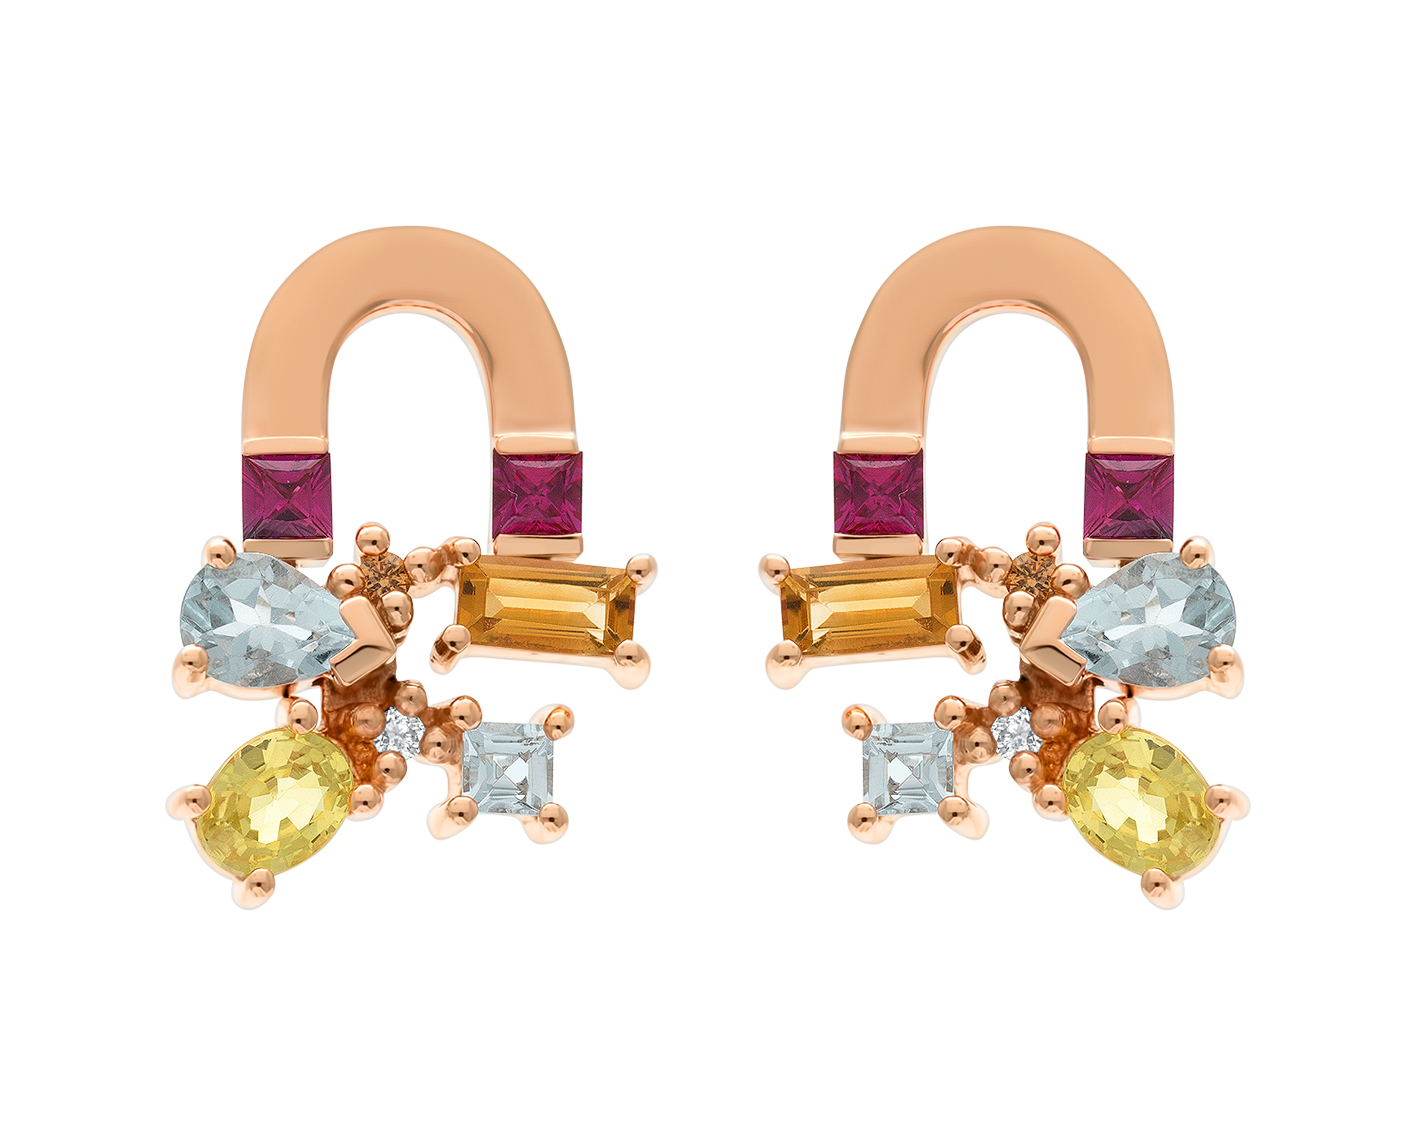 Sunset Attraction Earrings by Marmari on curated-crowd.com